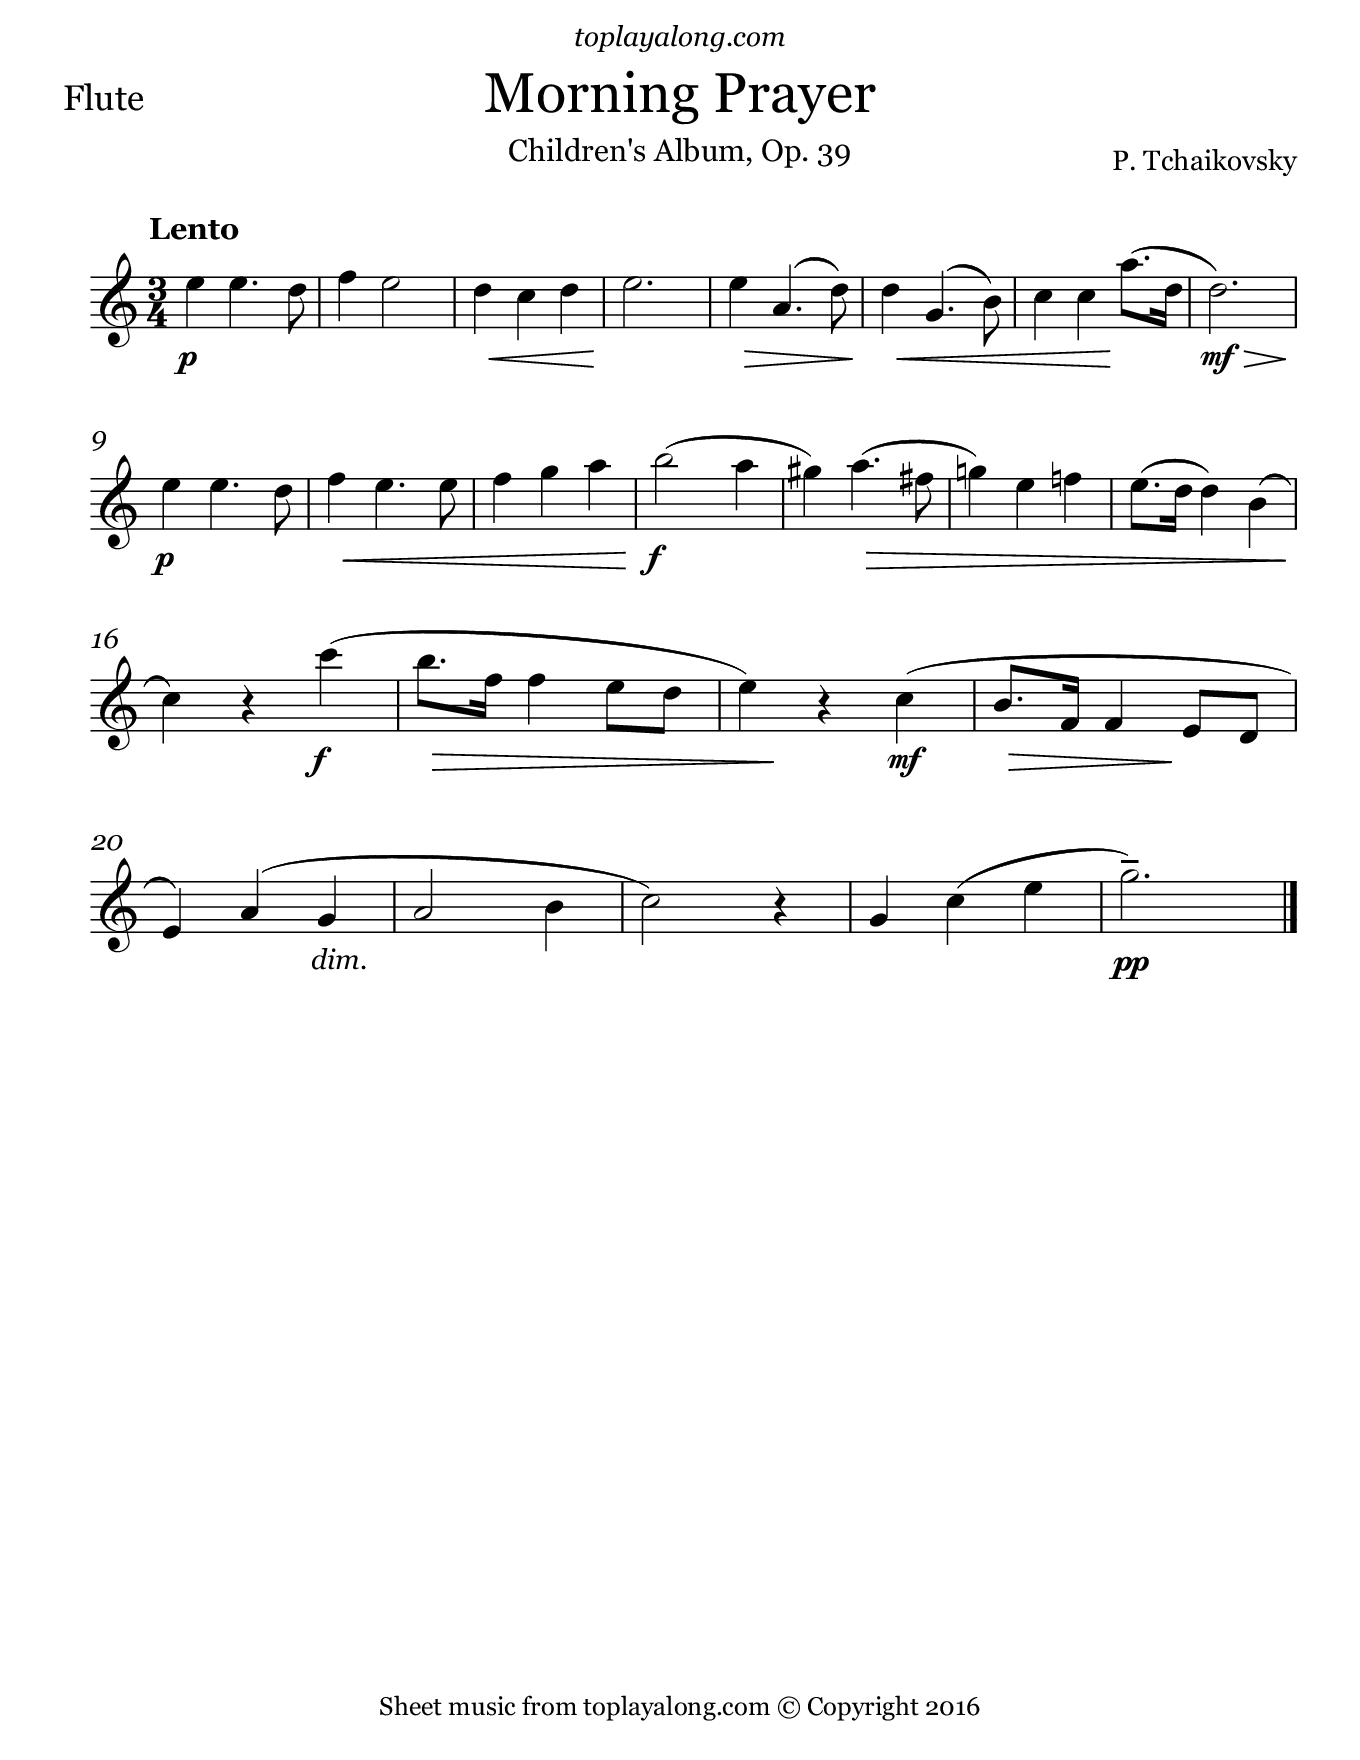 Morning Prayer by Tchaikovsky. Sheet music for Flute, page 1.